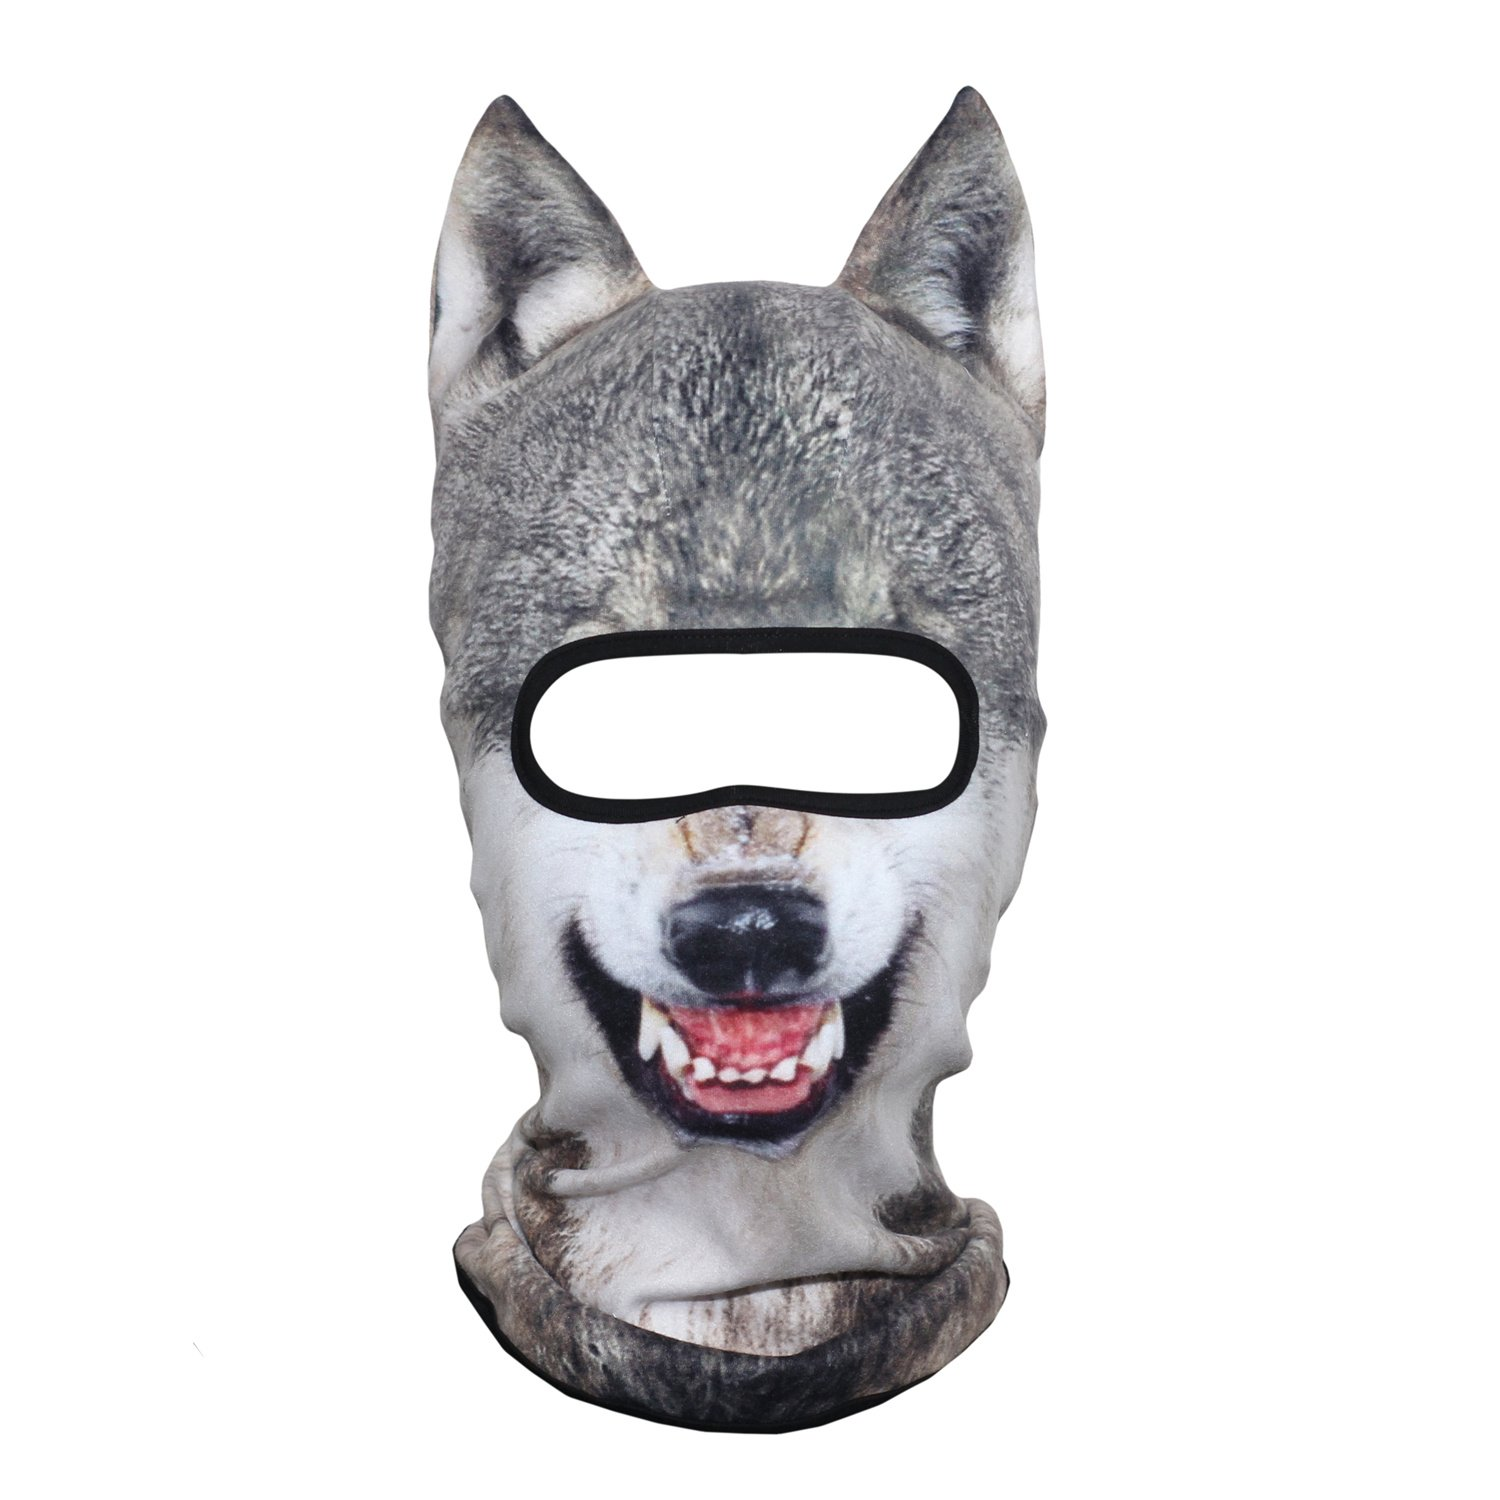 AXBXCX 3D Animal Ears Fleece Thermal Neck Warmer Windproof Hood Cover Face Mask Protection for Ski Snowboard Snowmobile Halloween Winter Cold Weather Wolf MDD-10